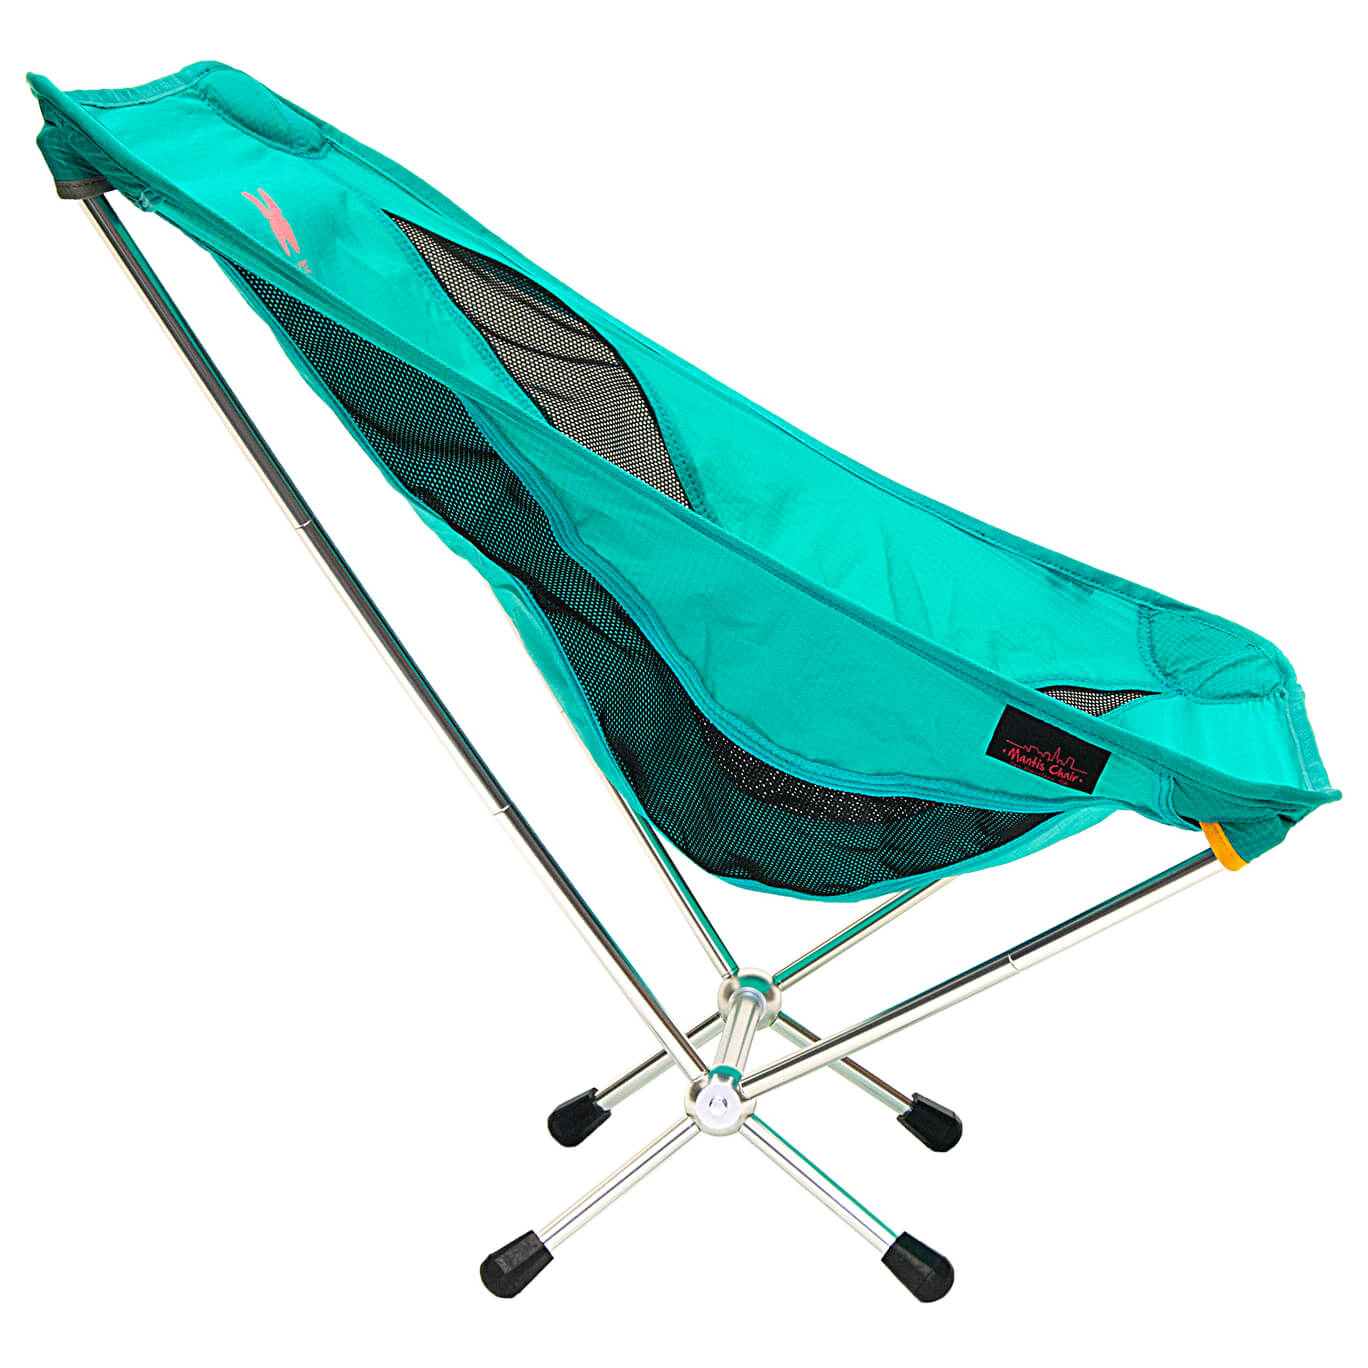 alite mantis chair light green covers 2 camping free uk delivery